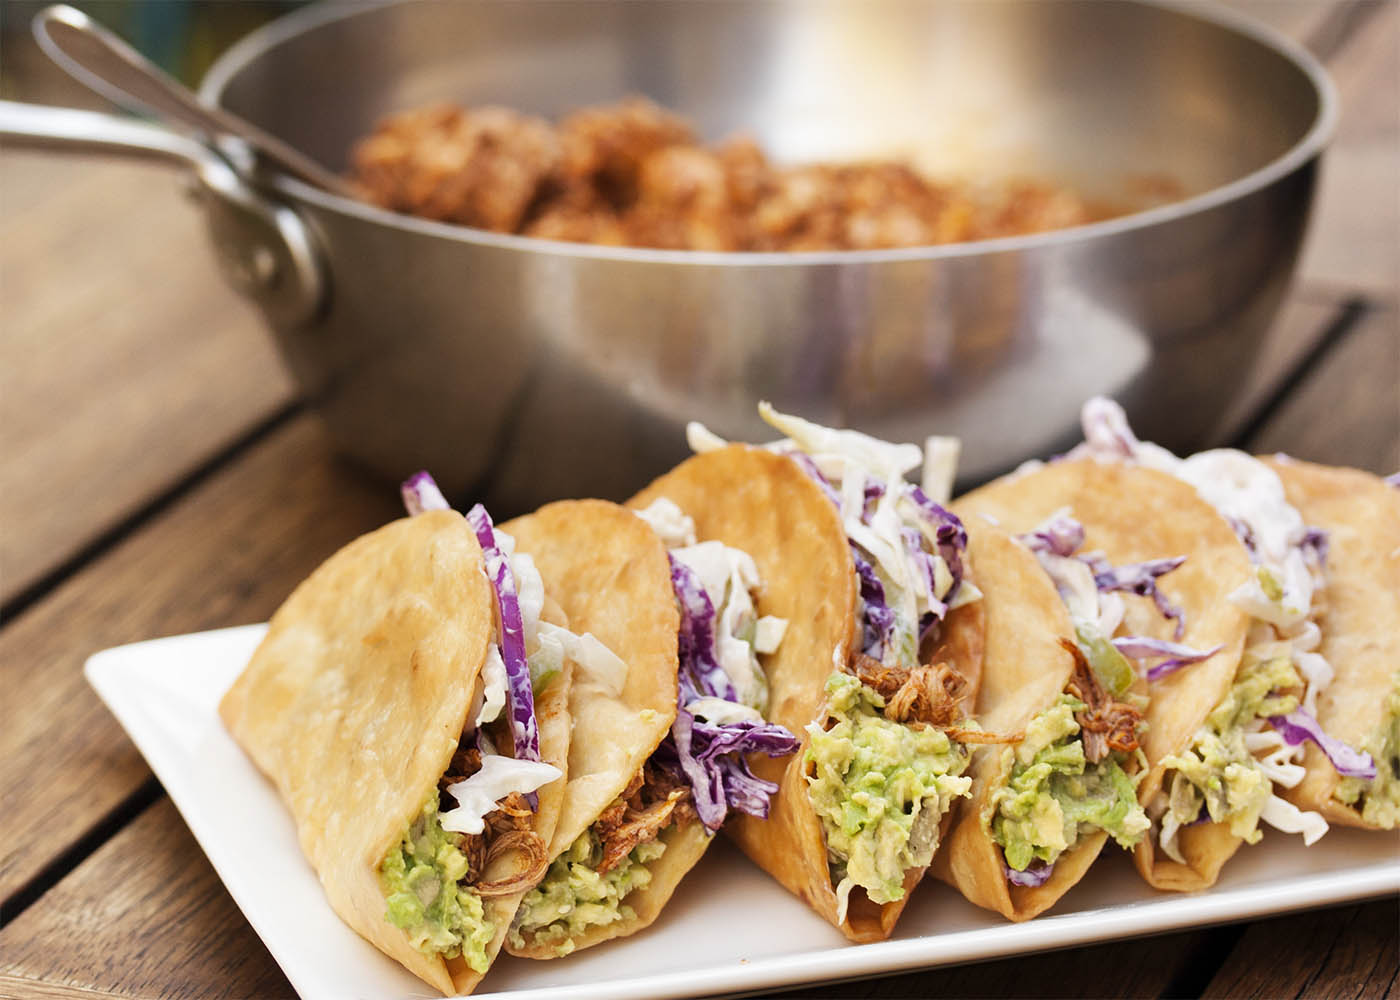 Beer braised pulled chicken tacos just a little bit of bacon beer braised pulled chicken tacos these tacos feature slow cooked chicken braised in beer and forumfinder Choice Image